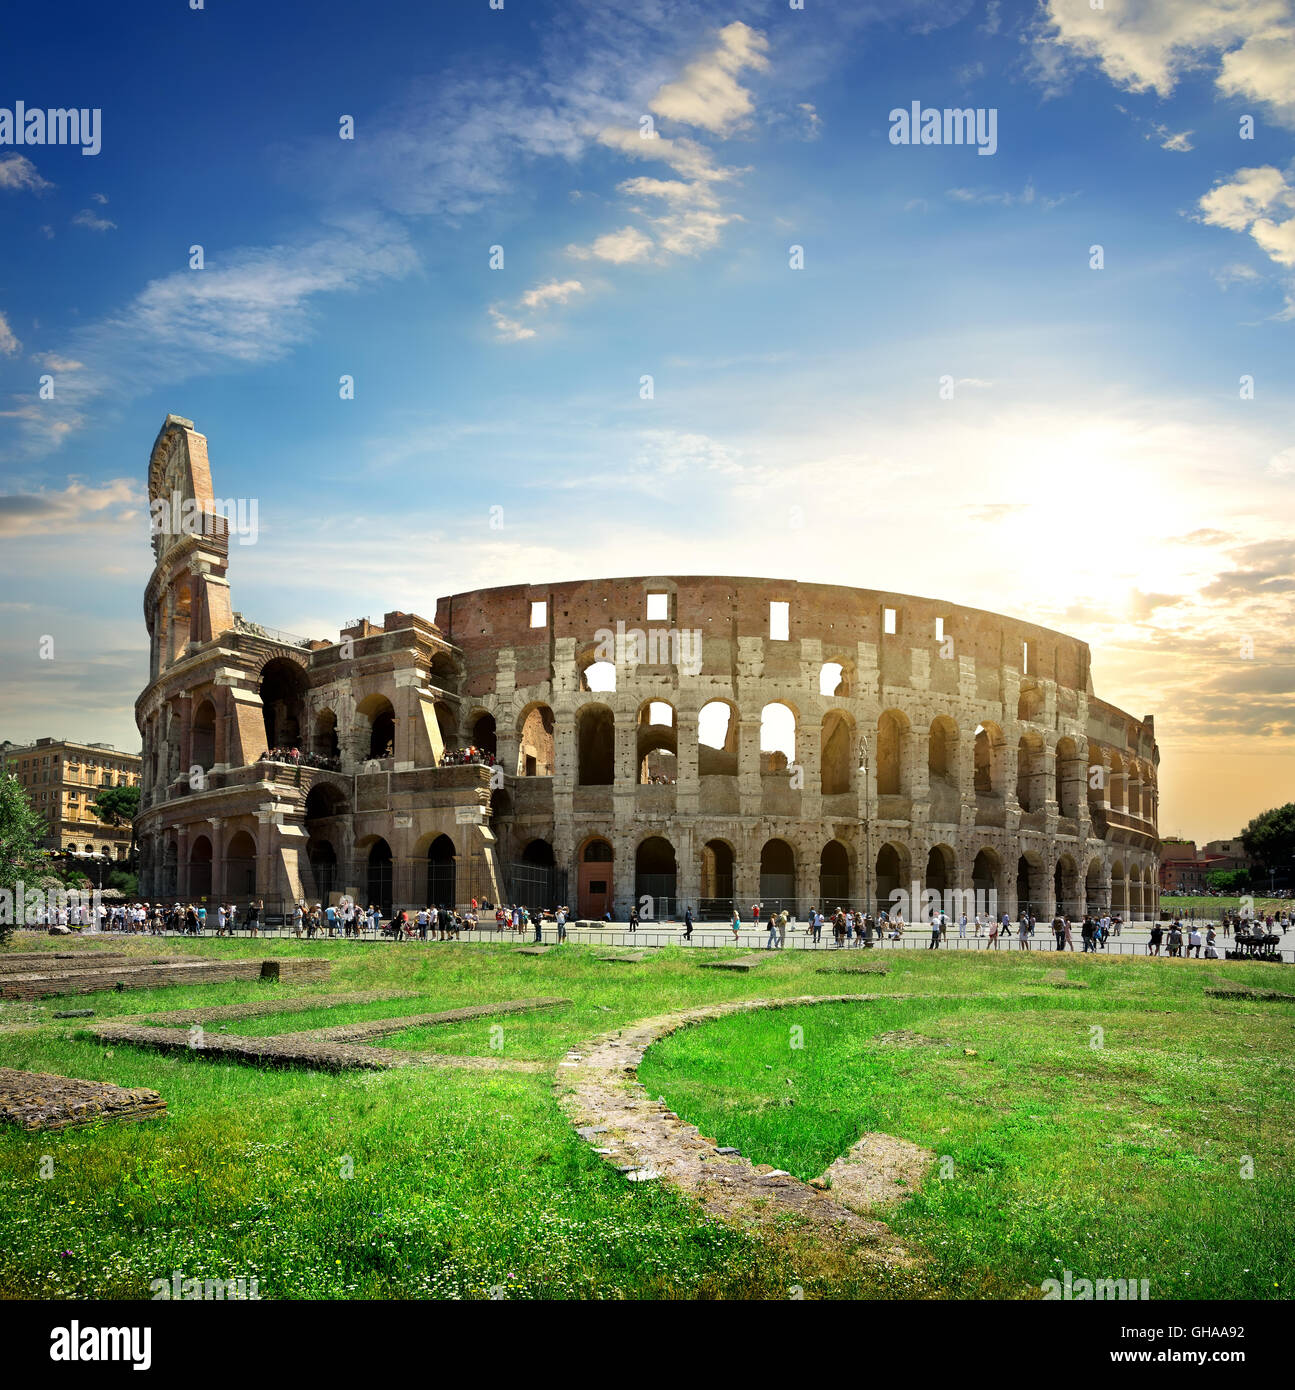 Ruins of great colosseum at the sunset - Stock Image